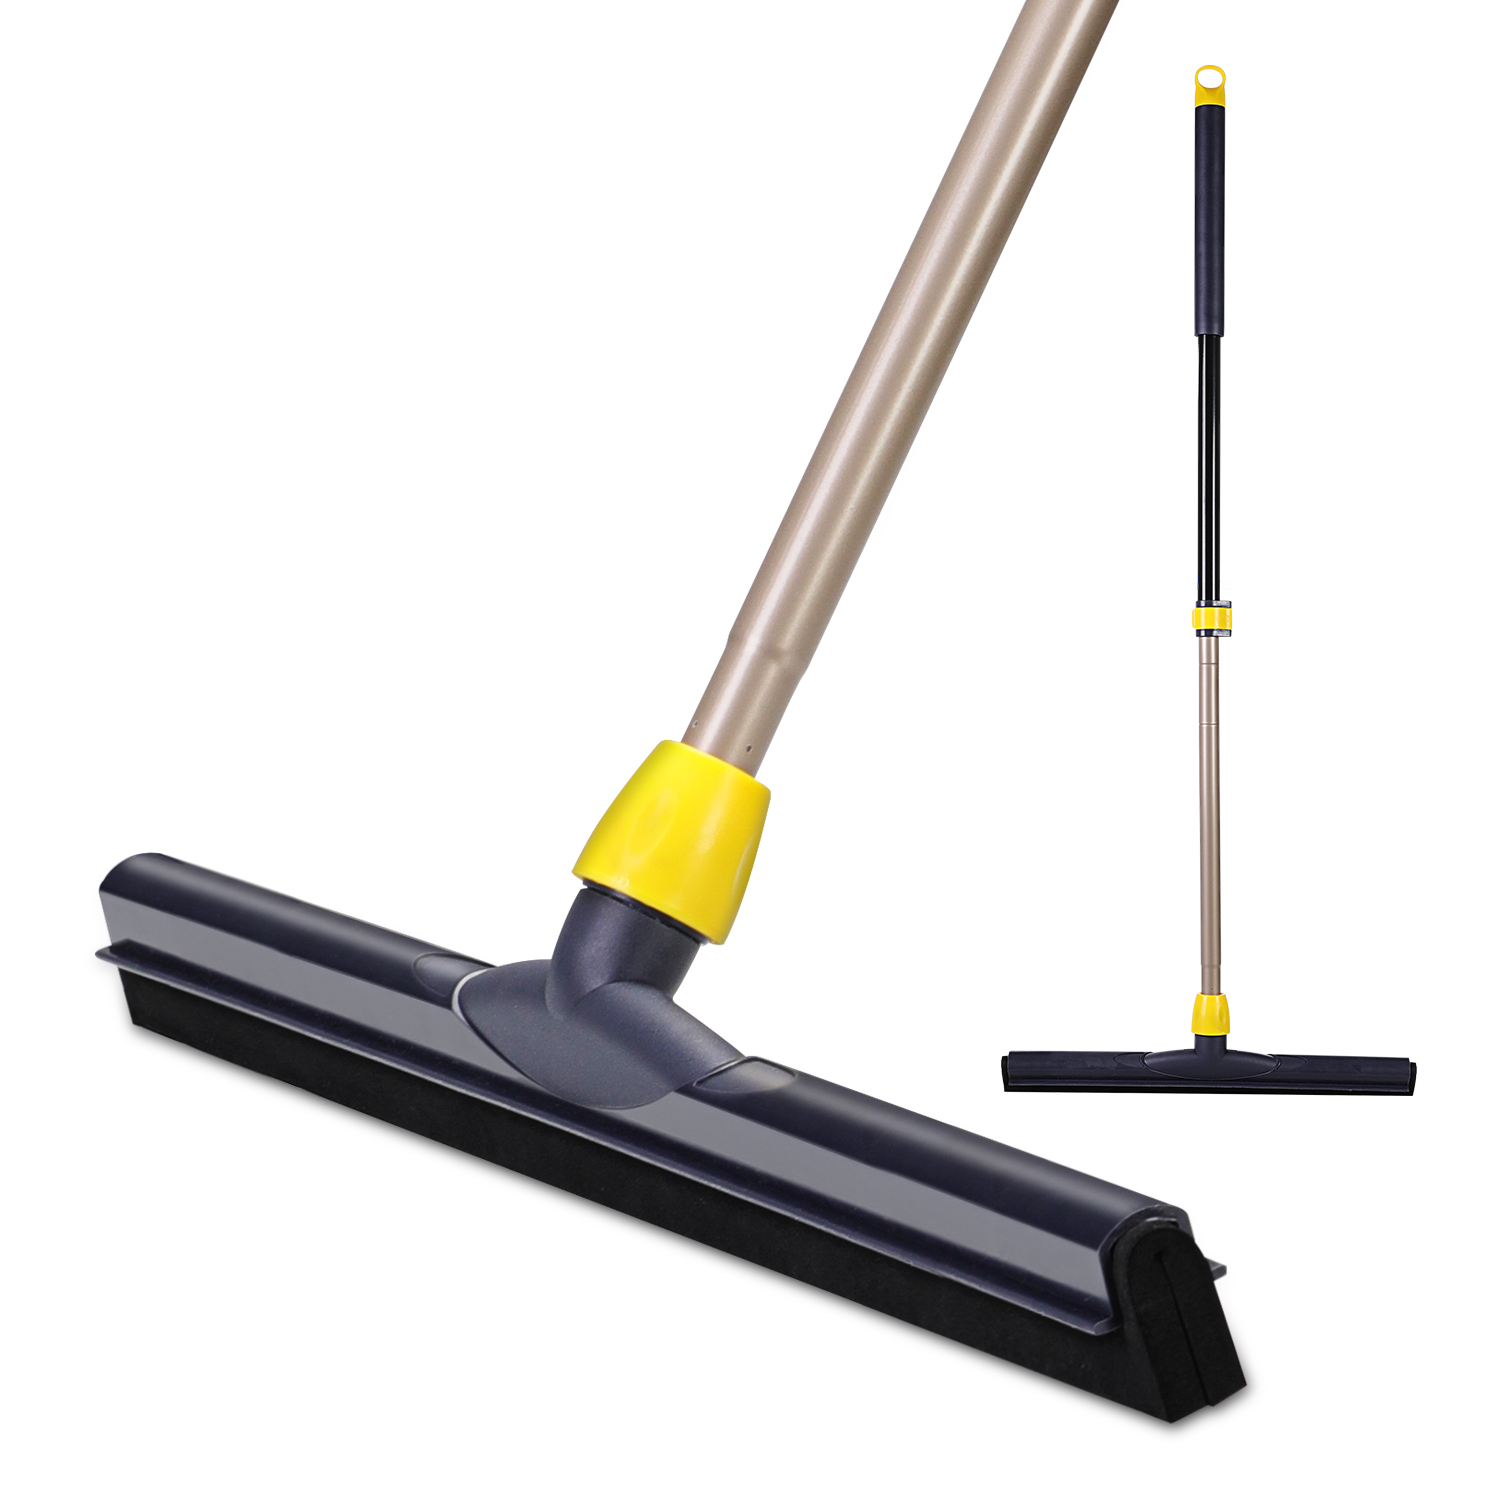 Yocada Floor Squeegee Scrubber 54in Long Adjustable Telescopic Heavy Duty Household Broom for Glass Tile Water Foam Cleaning